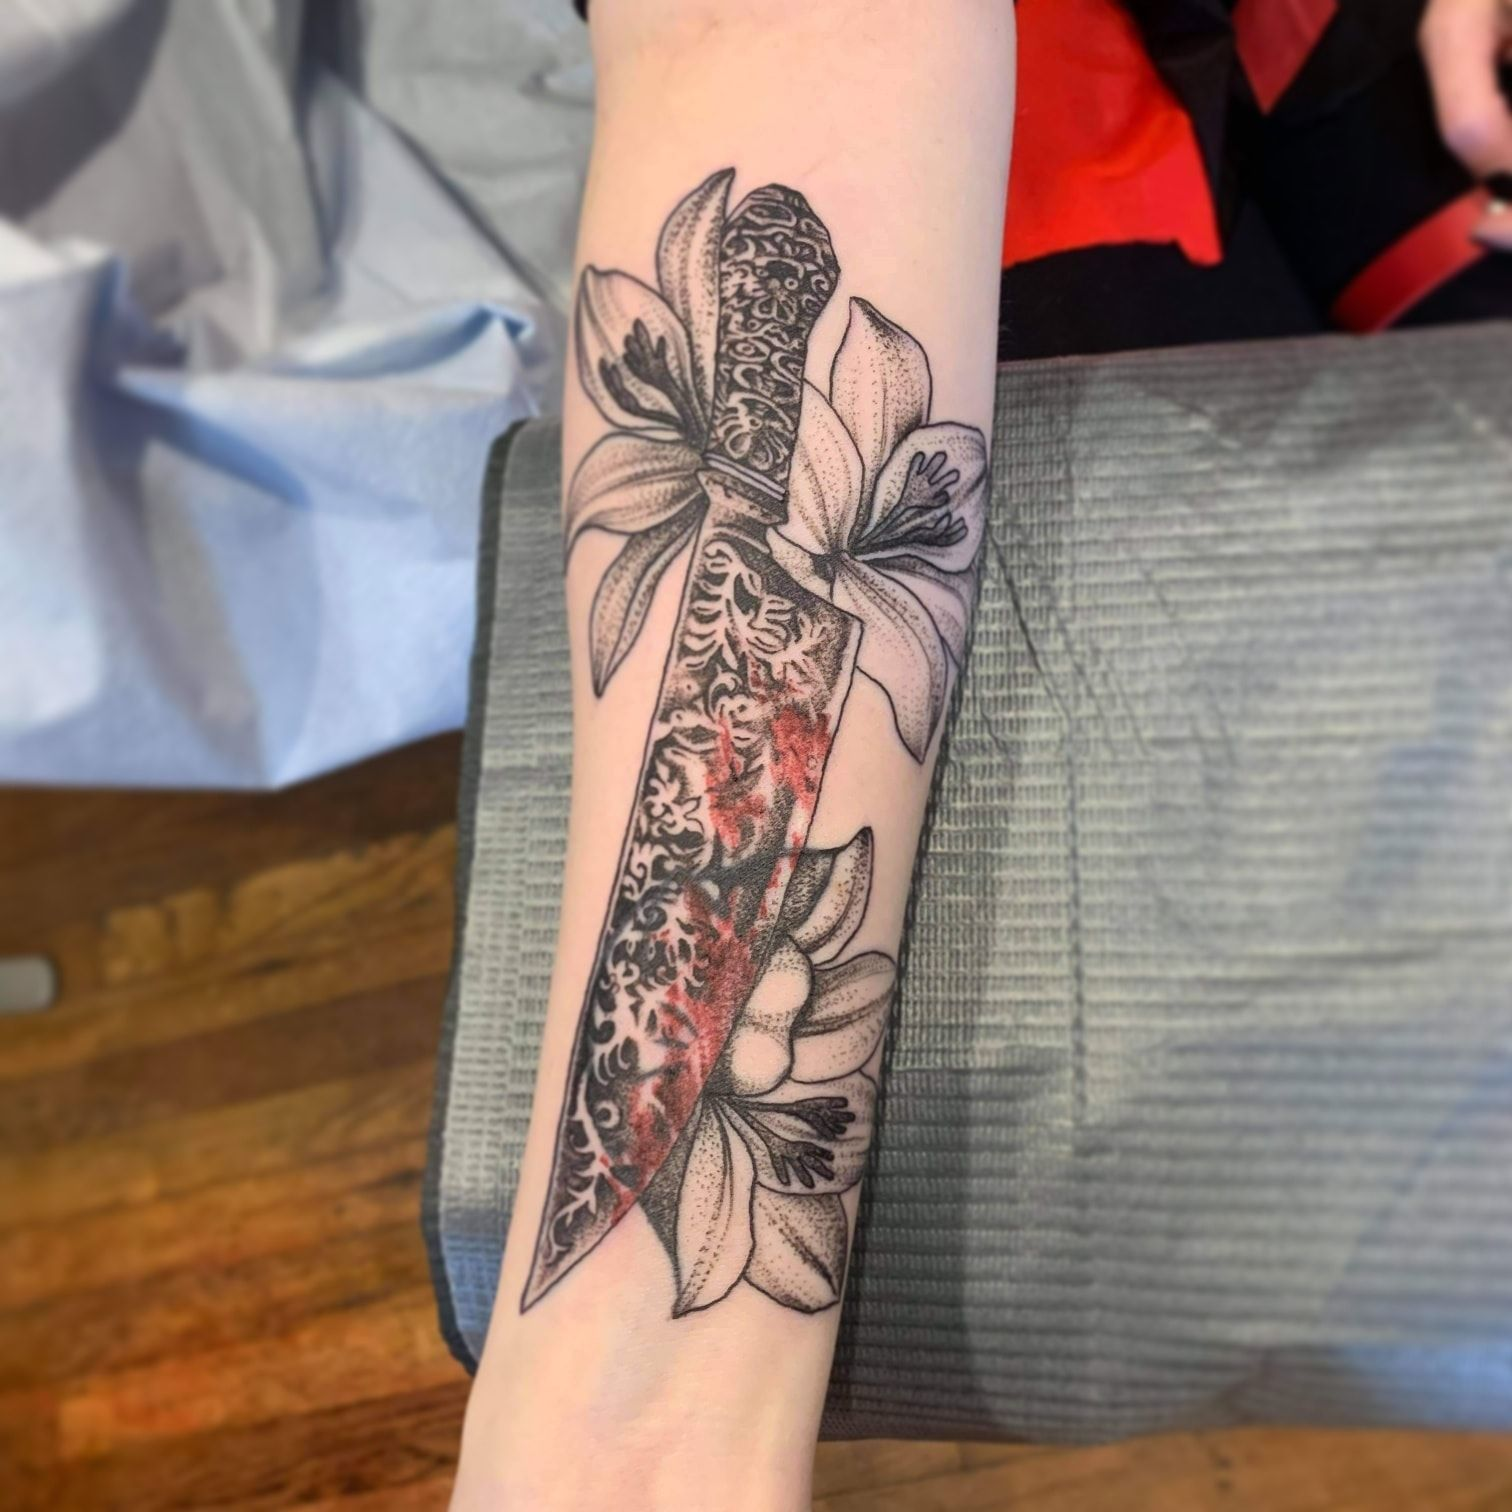 Knife and flowers by Chico Lou's Fine Tattoos studio in Athens Georgia GA. Artist - Veronica Hahn